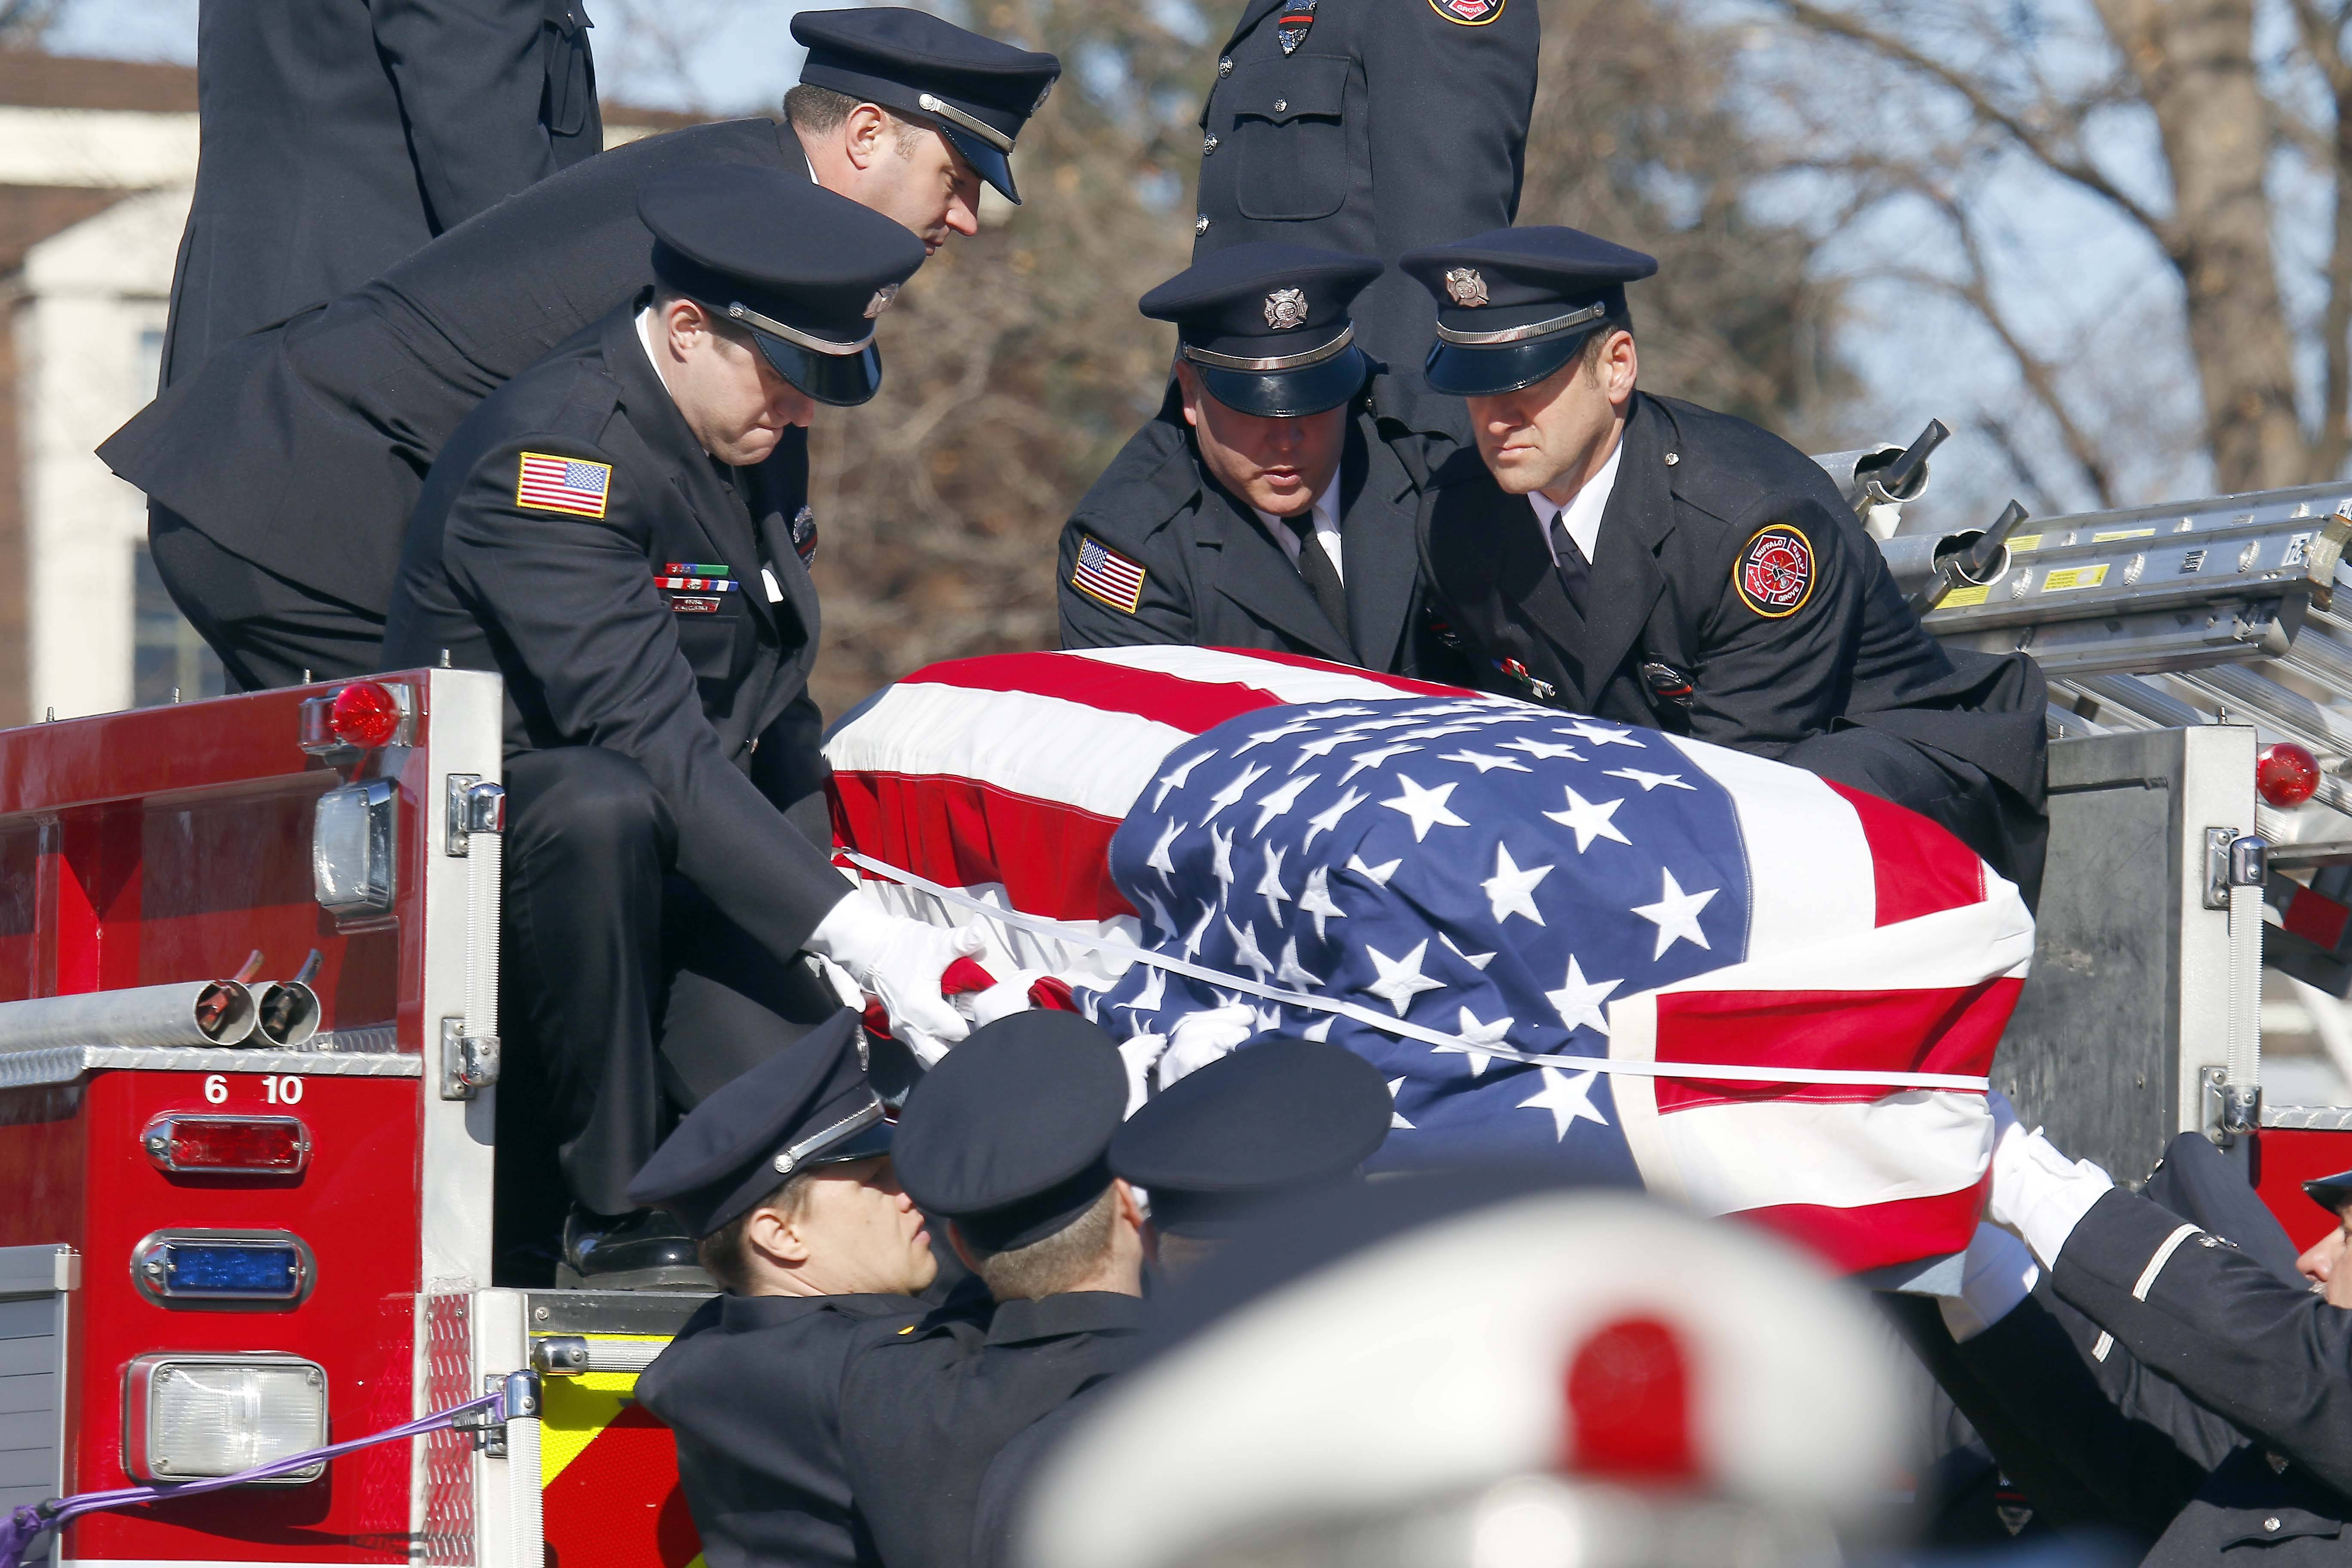 Firefighters lower the body of Buffalo Grove firefighter/paramedic Kevin Hauber, 51, who died last weekend after a four-year battle with colon cancer.